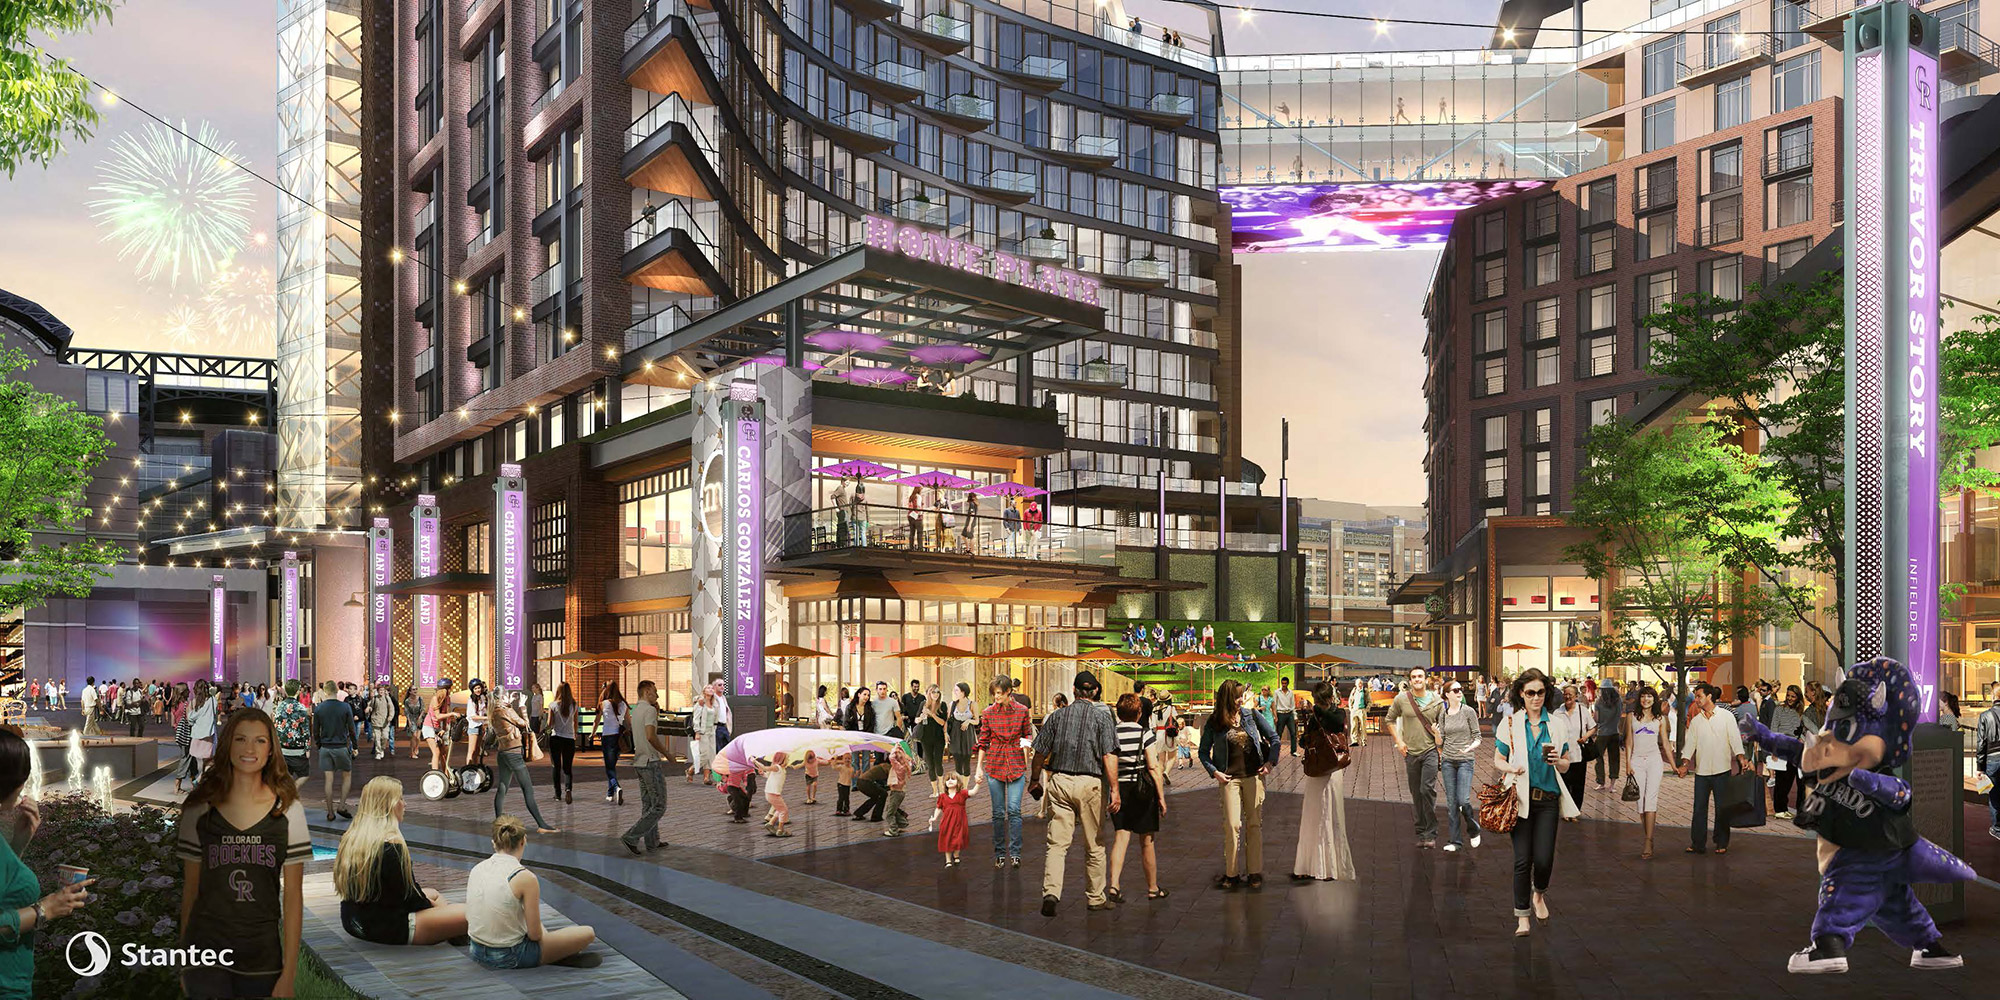 Proposed Colorado Rockies Mixed-Use project viewed from 19th & Wynkoop, rendering courtesy of Stantec